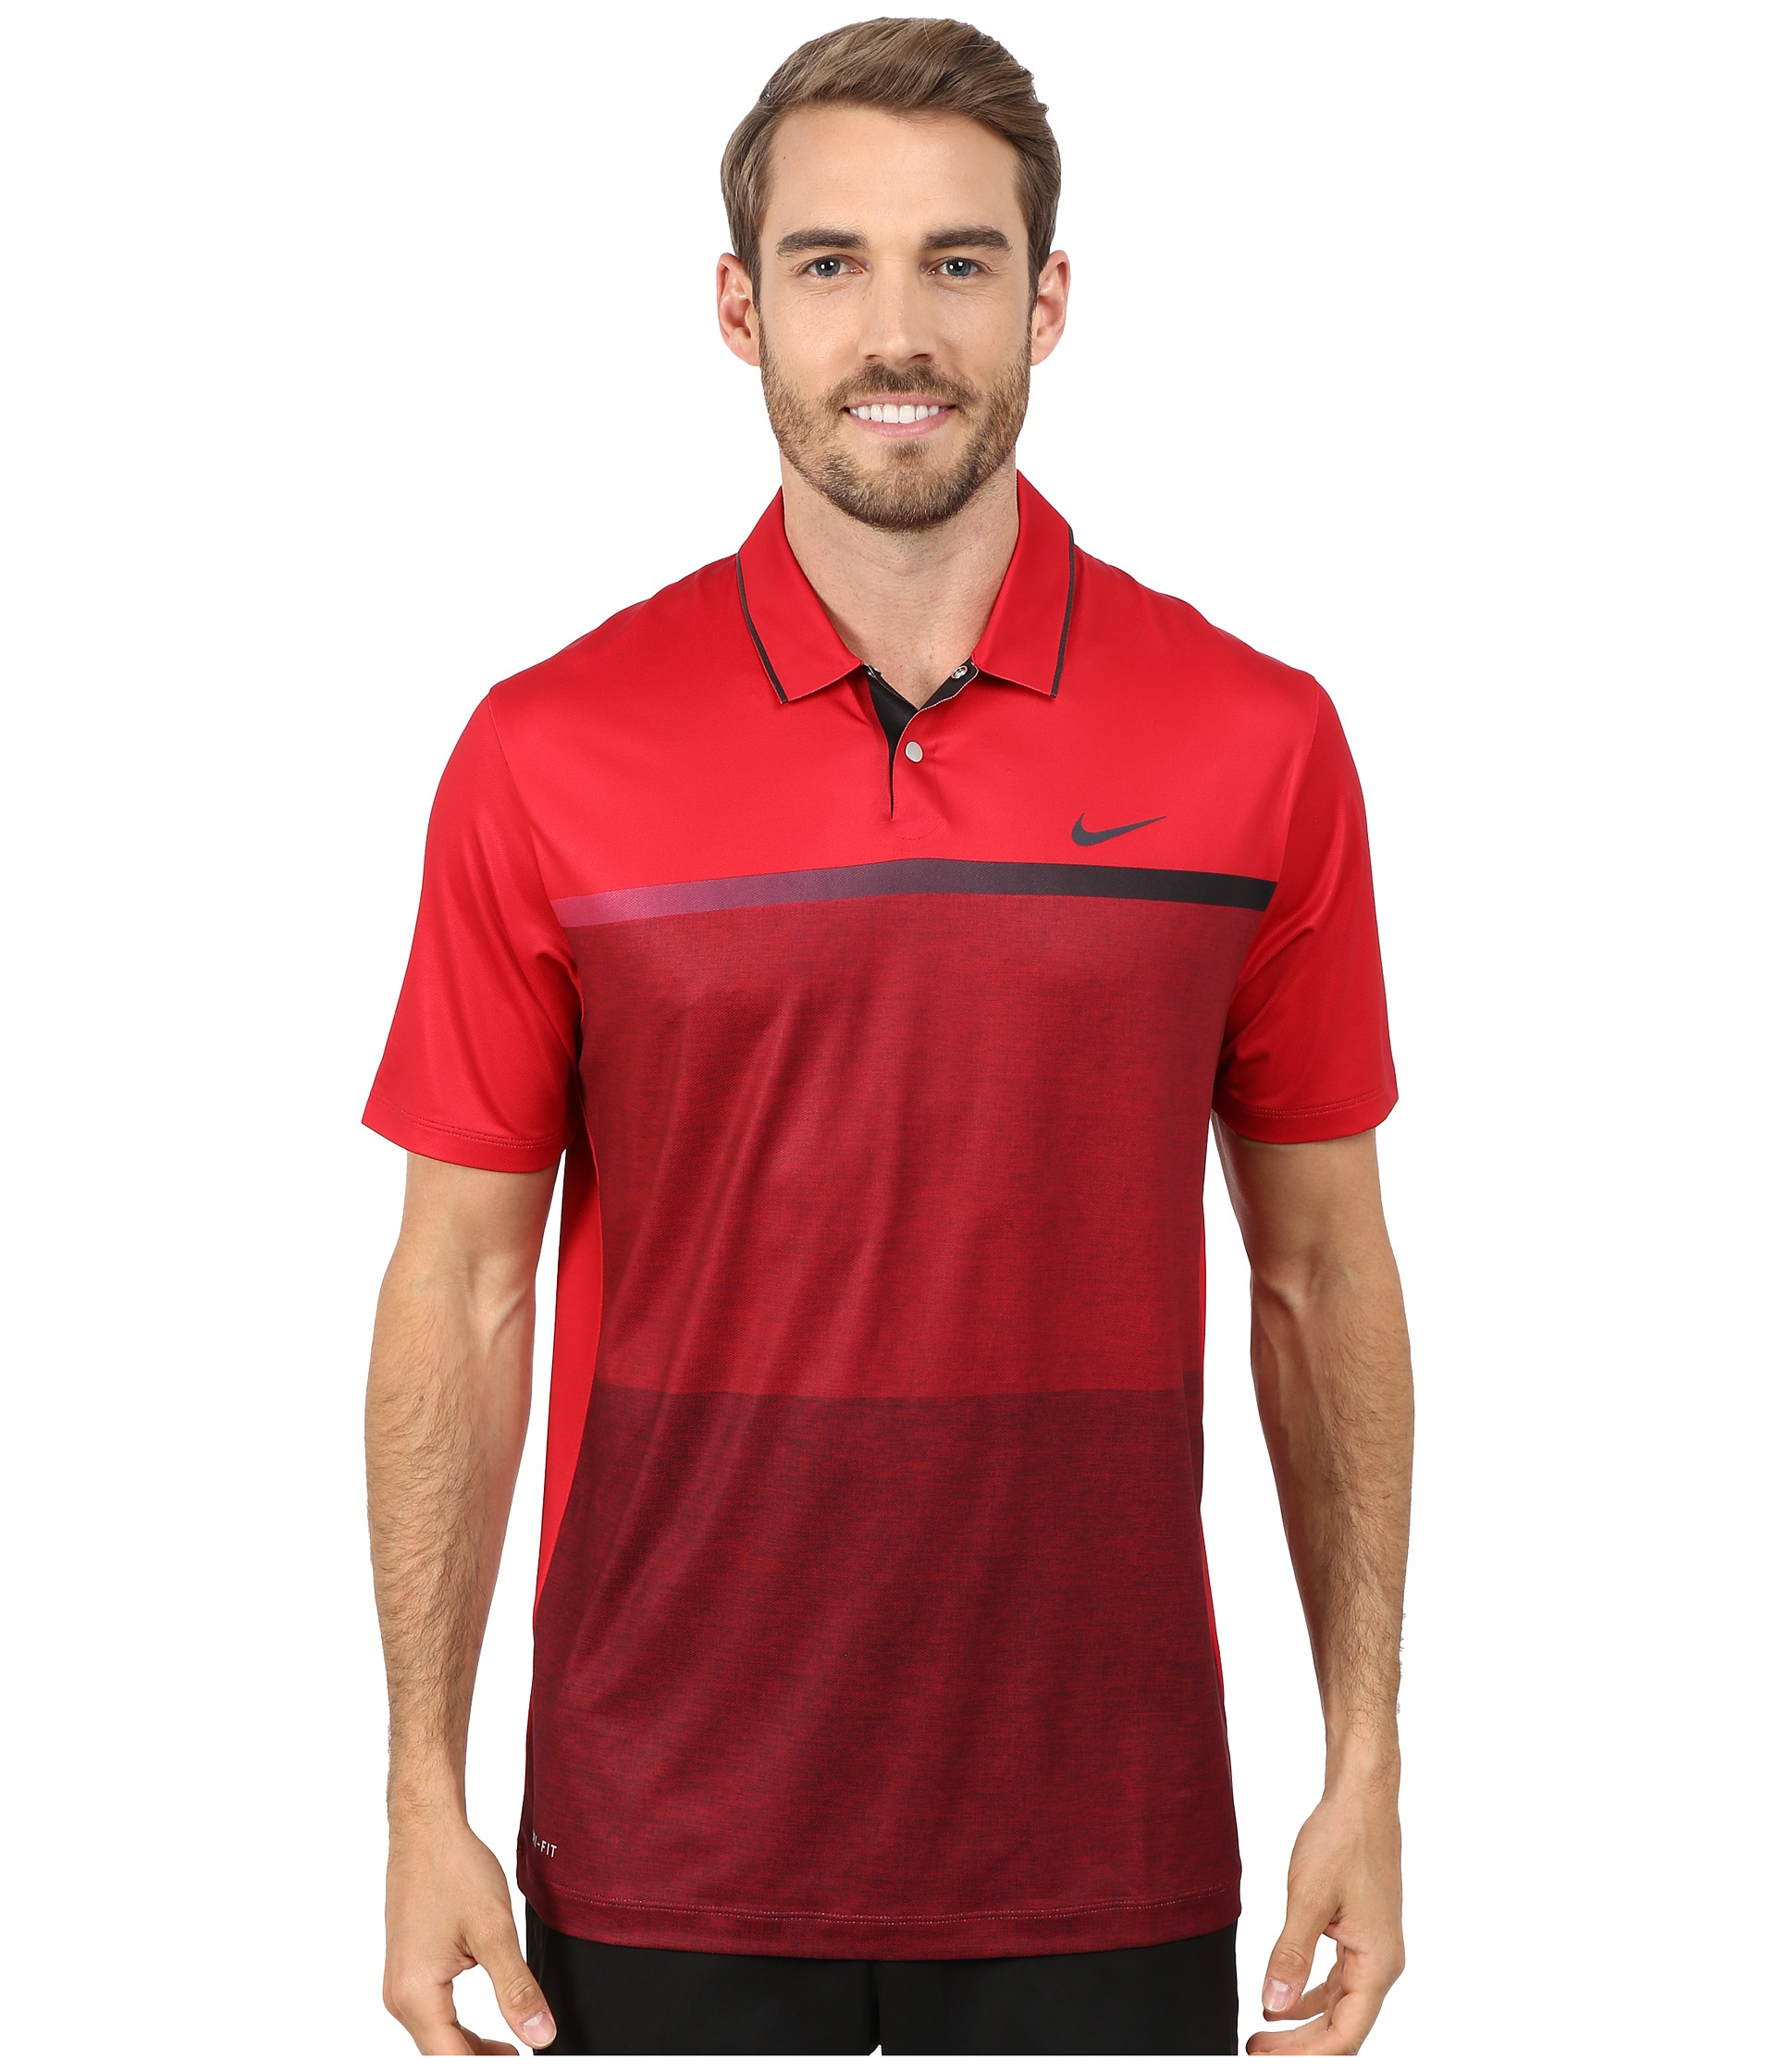 1d336377c6 Nike Tiger Woods Mobility Print Polo Shirt in Red for Men - Lyst